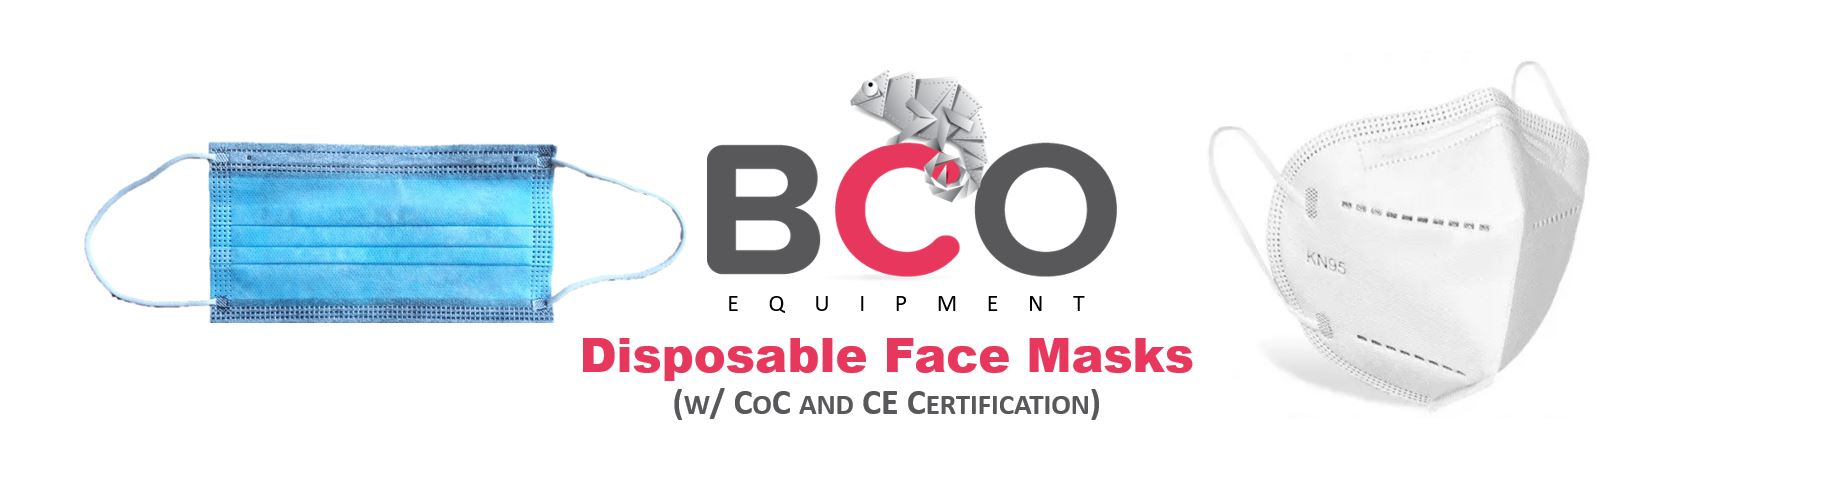 Illustration for: BCO Equipment (Disposable Face Masks)